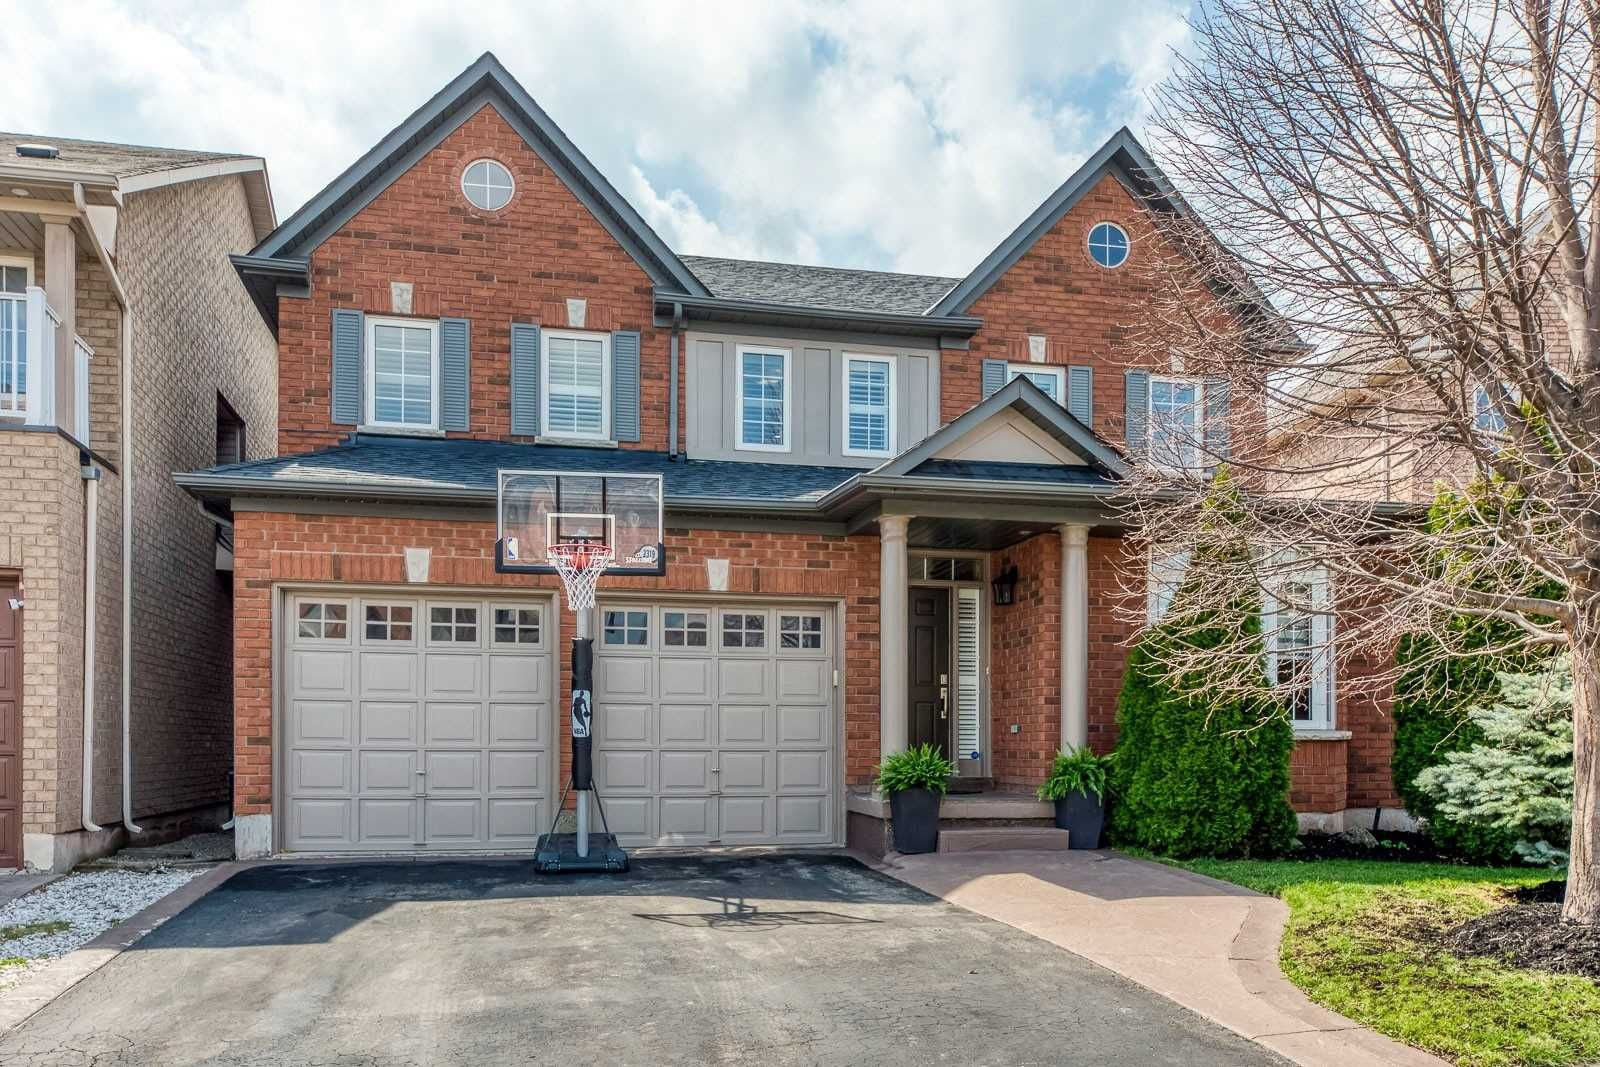 Main Photo: 2319 Briargrove Circle in Oakville: West Oak Trails House (2-Storey) for sale : MLS®# W5195528